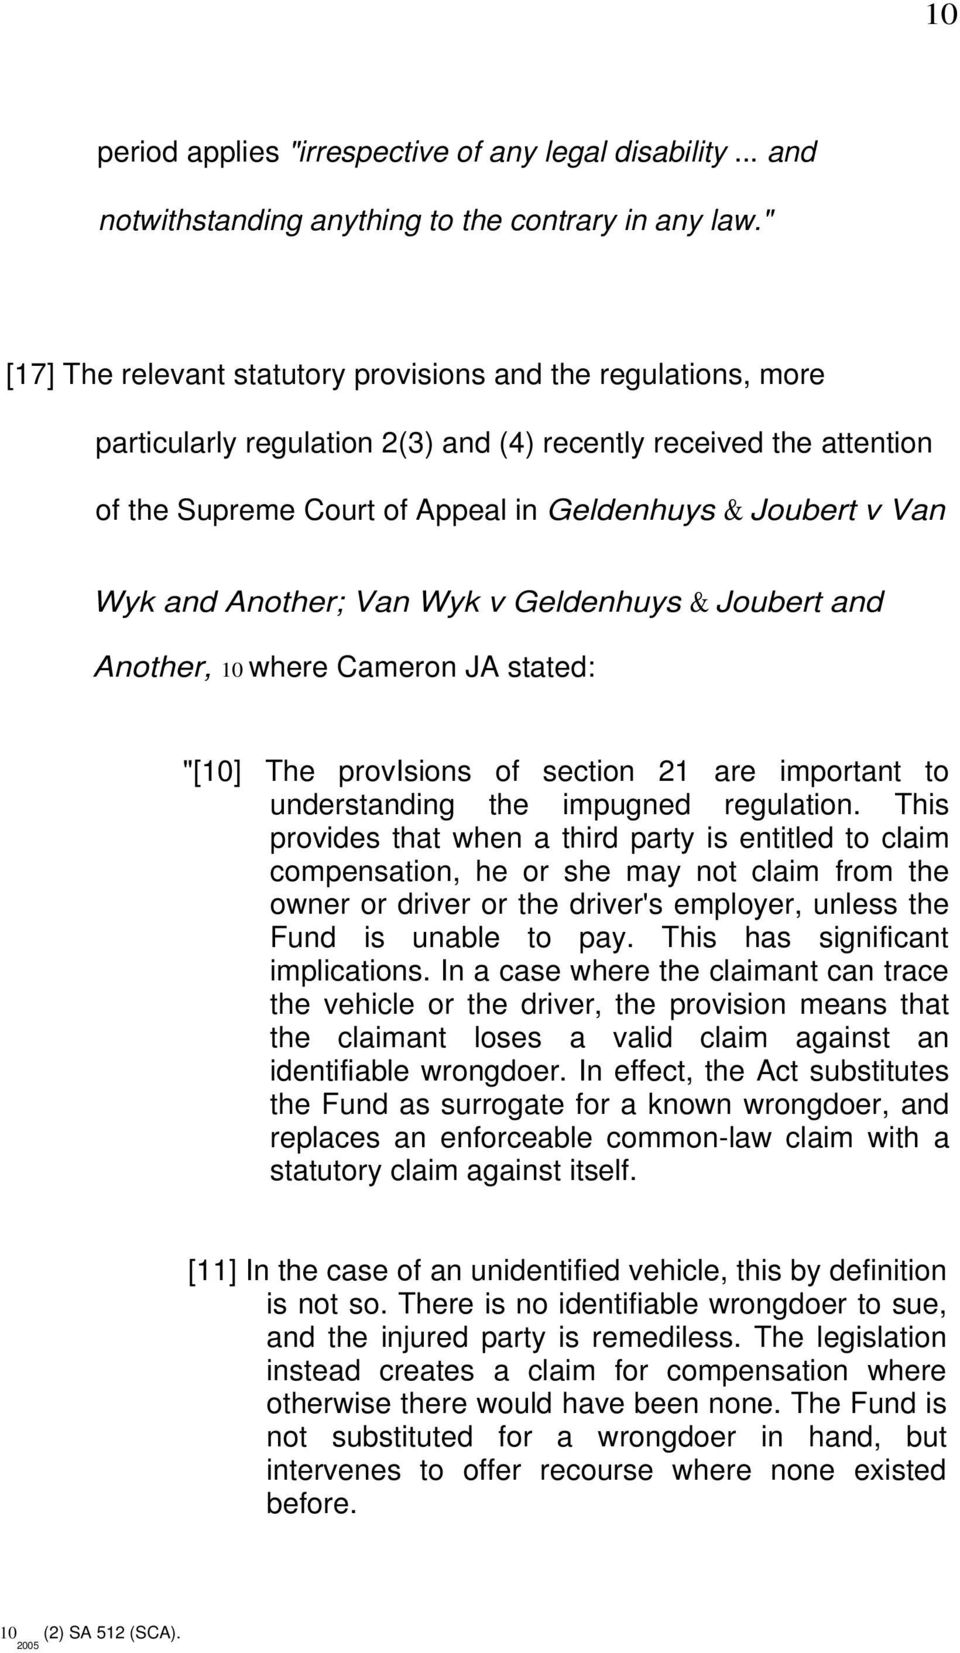 "Wyk and Another; Van Wyk v Geldenhuys & Joubert and Another, 10 where Cameron JA stated: ""[10] The provisions of section 21 are important to understanding the impugned regulation."